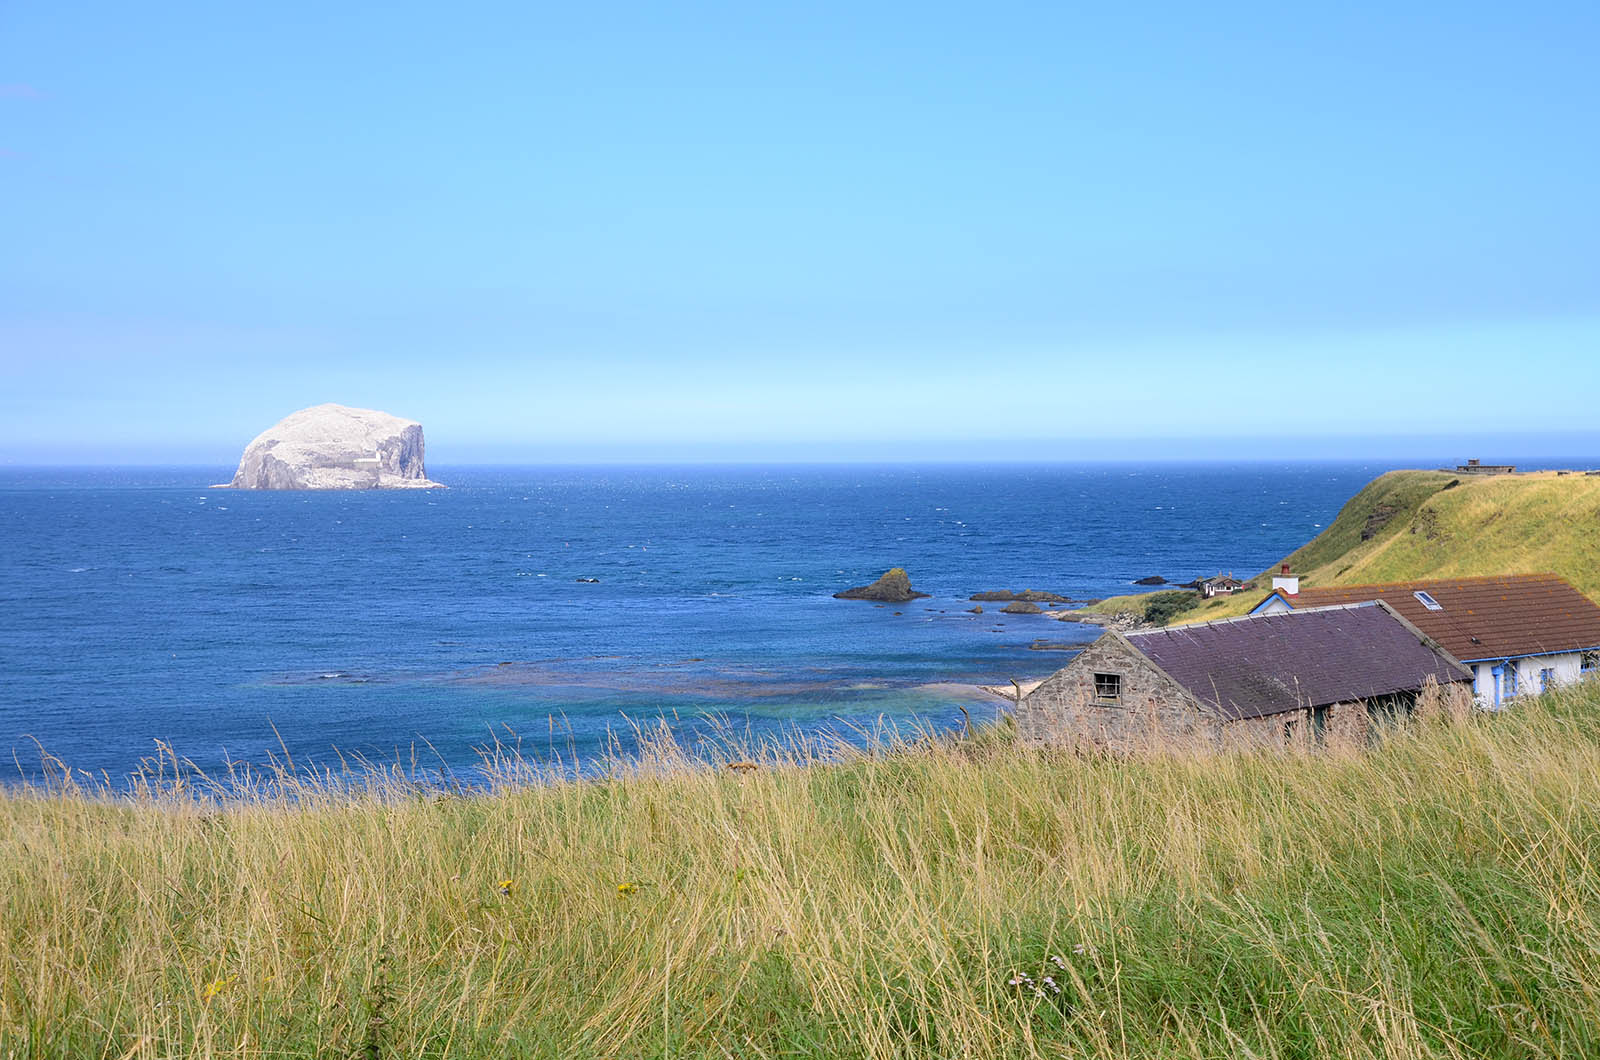 Bass Rock off North Berwick, Scotland, home to the world's largest colony of northern gannets